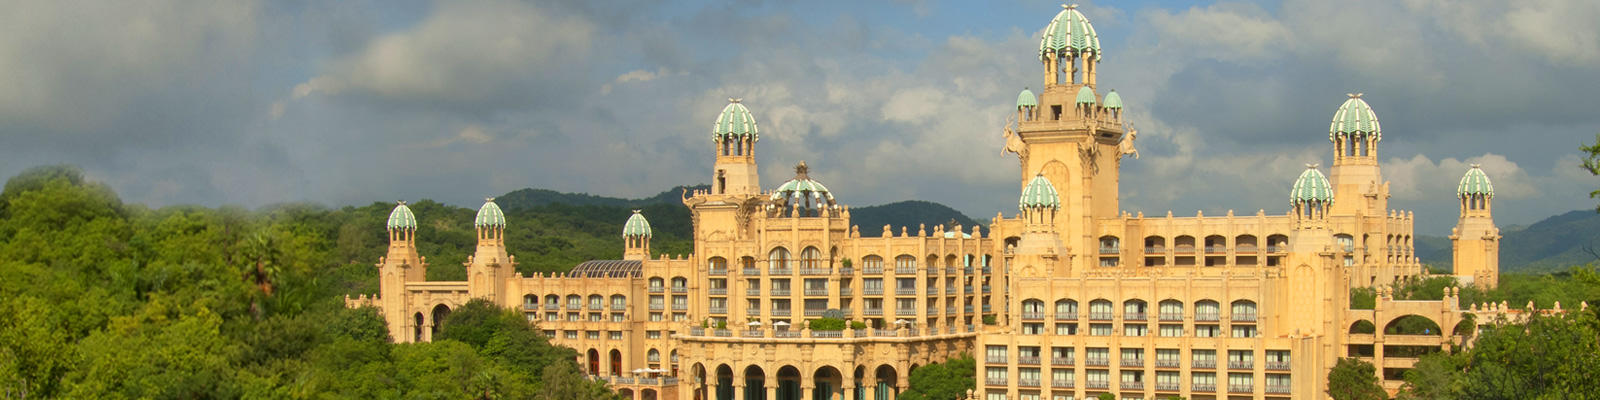 A view of the Palace of the Lost City hotel at Sun City, which can be visited with a cheap holiday from Flight Centre.